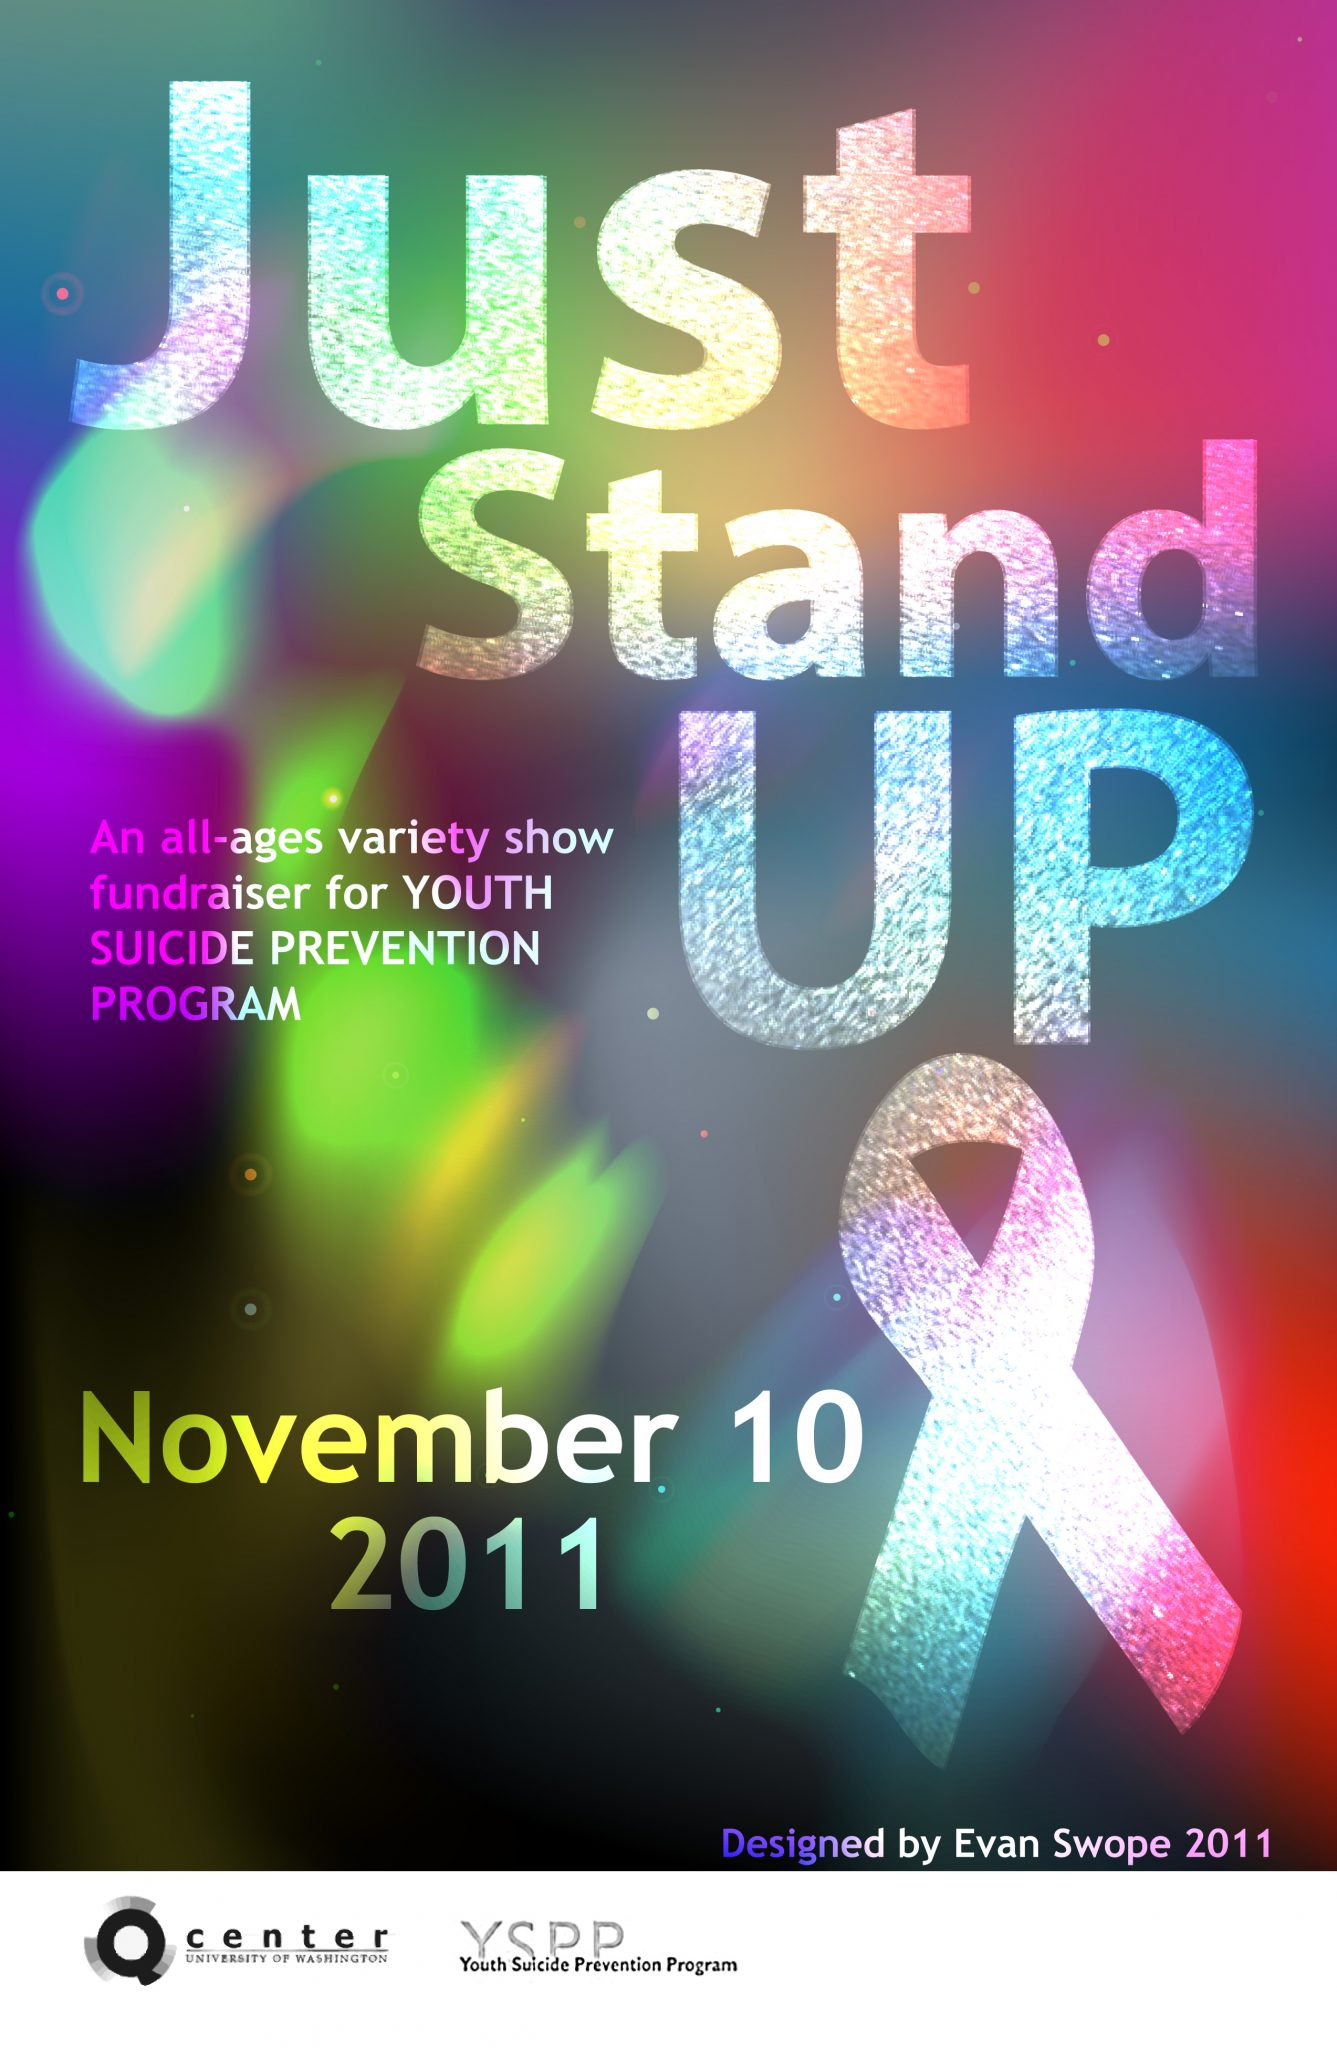 Poster for Just Stand Up, and event on november 10th at 6:30 pm, kane hall benefiting youth suicide prevention